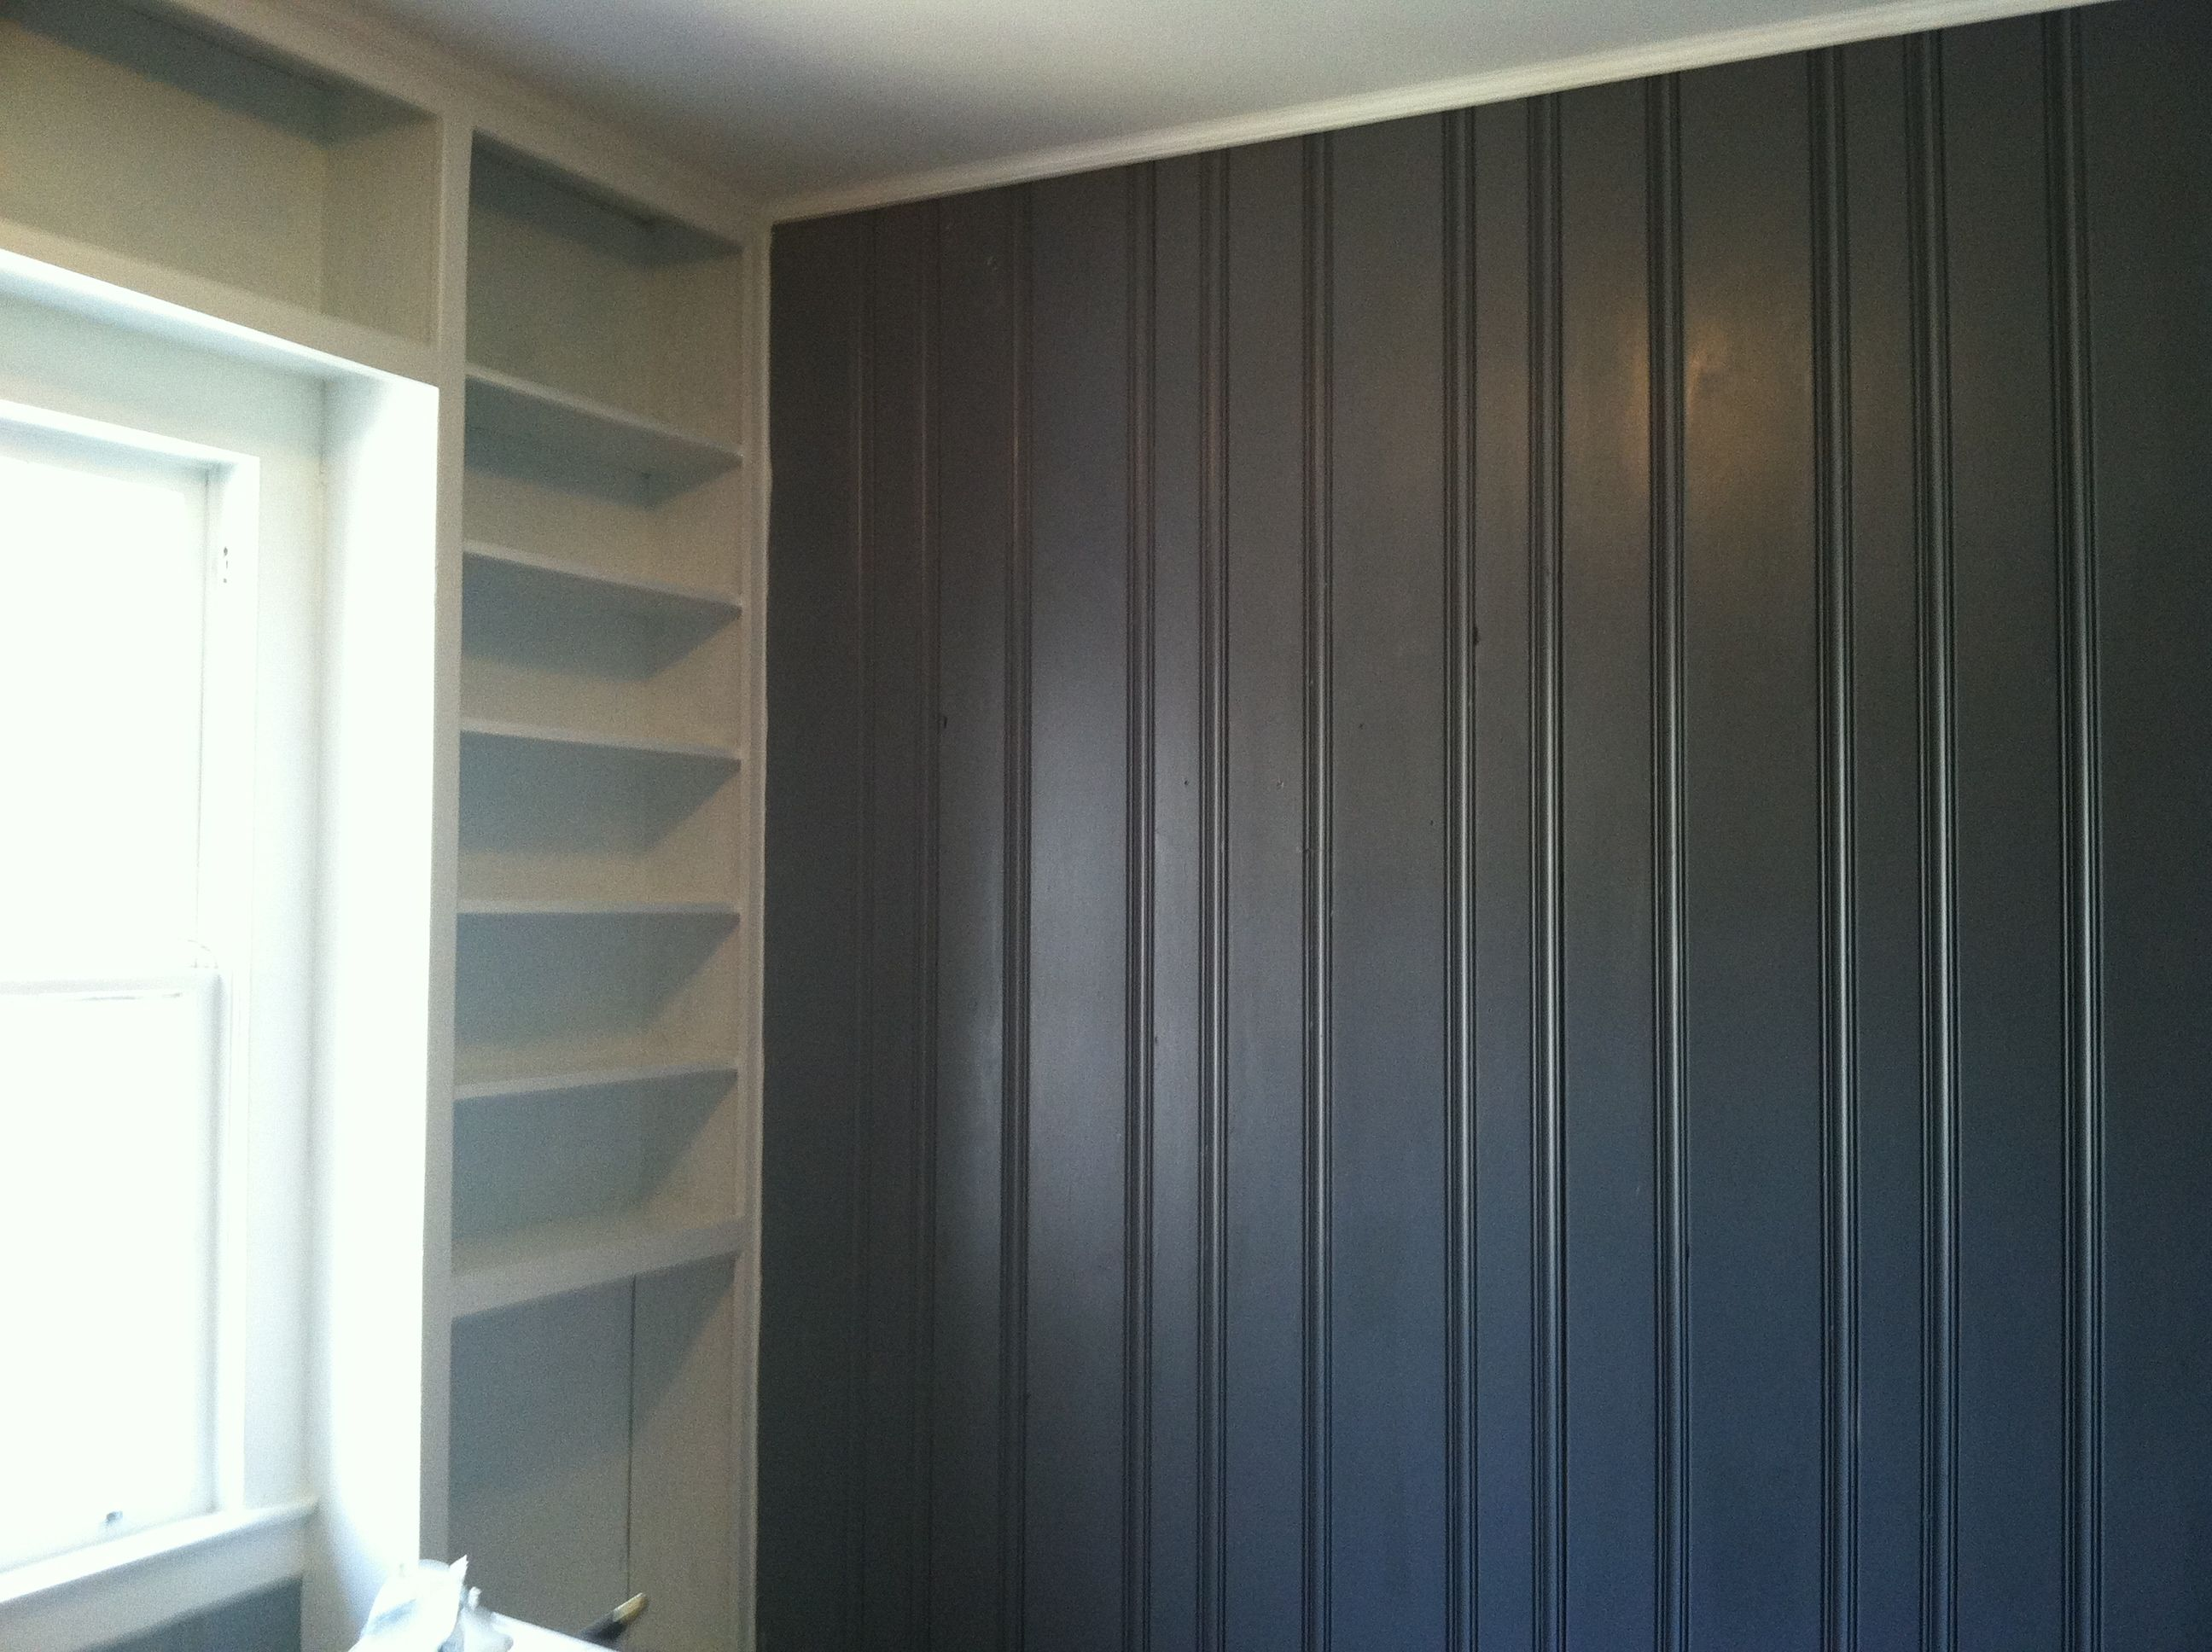 painted dark wood paneling grey and white shelving turned out great our remodelour projects. Black Bedroom Furniture Sets. Home Design Ideas